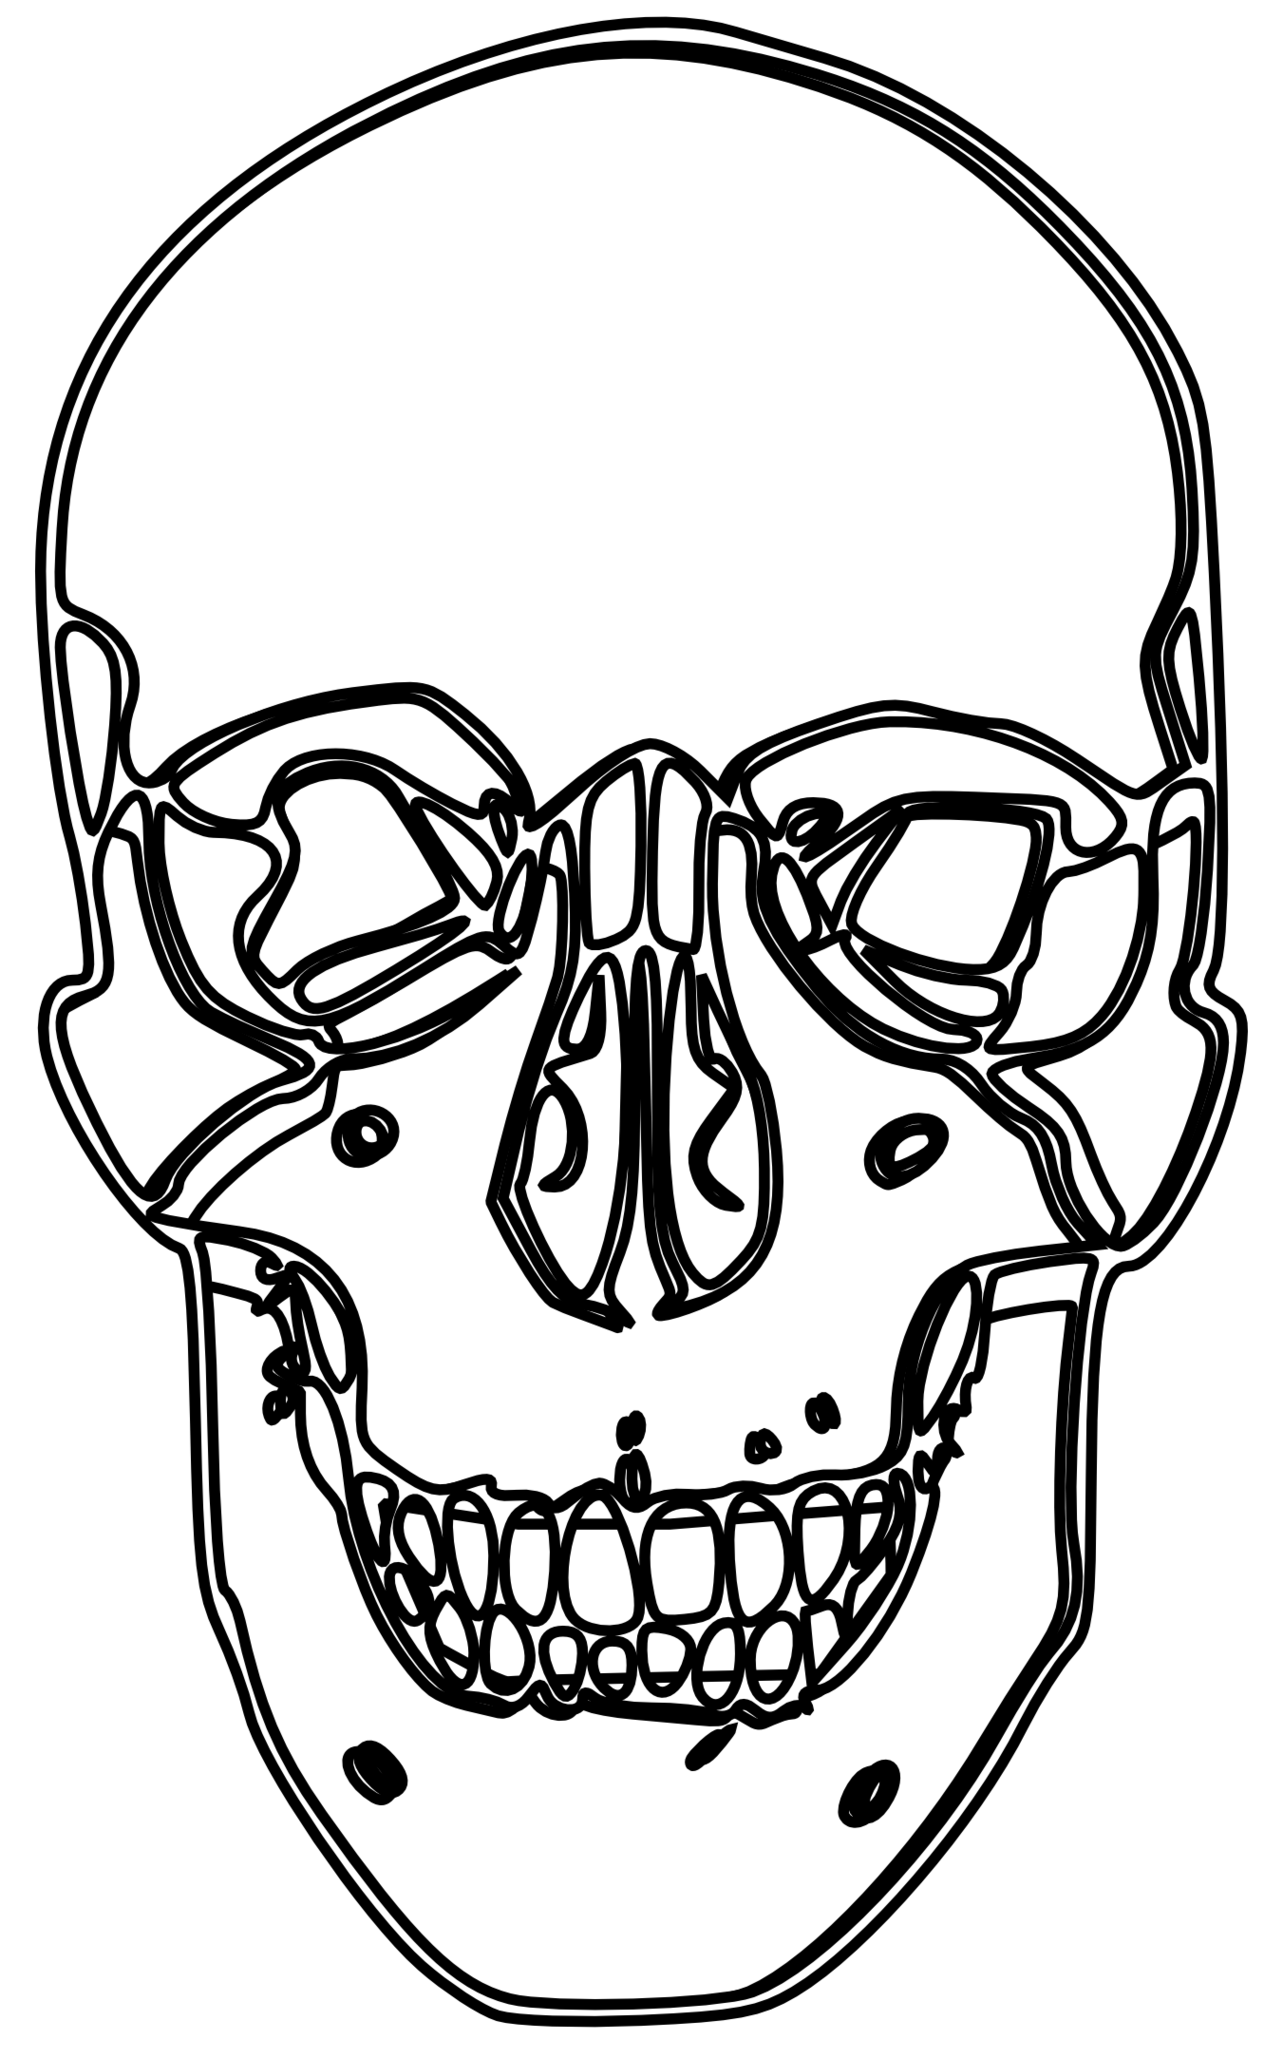 Line Art Skull : Skull line drawing clipart best